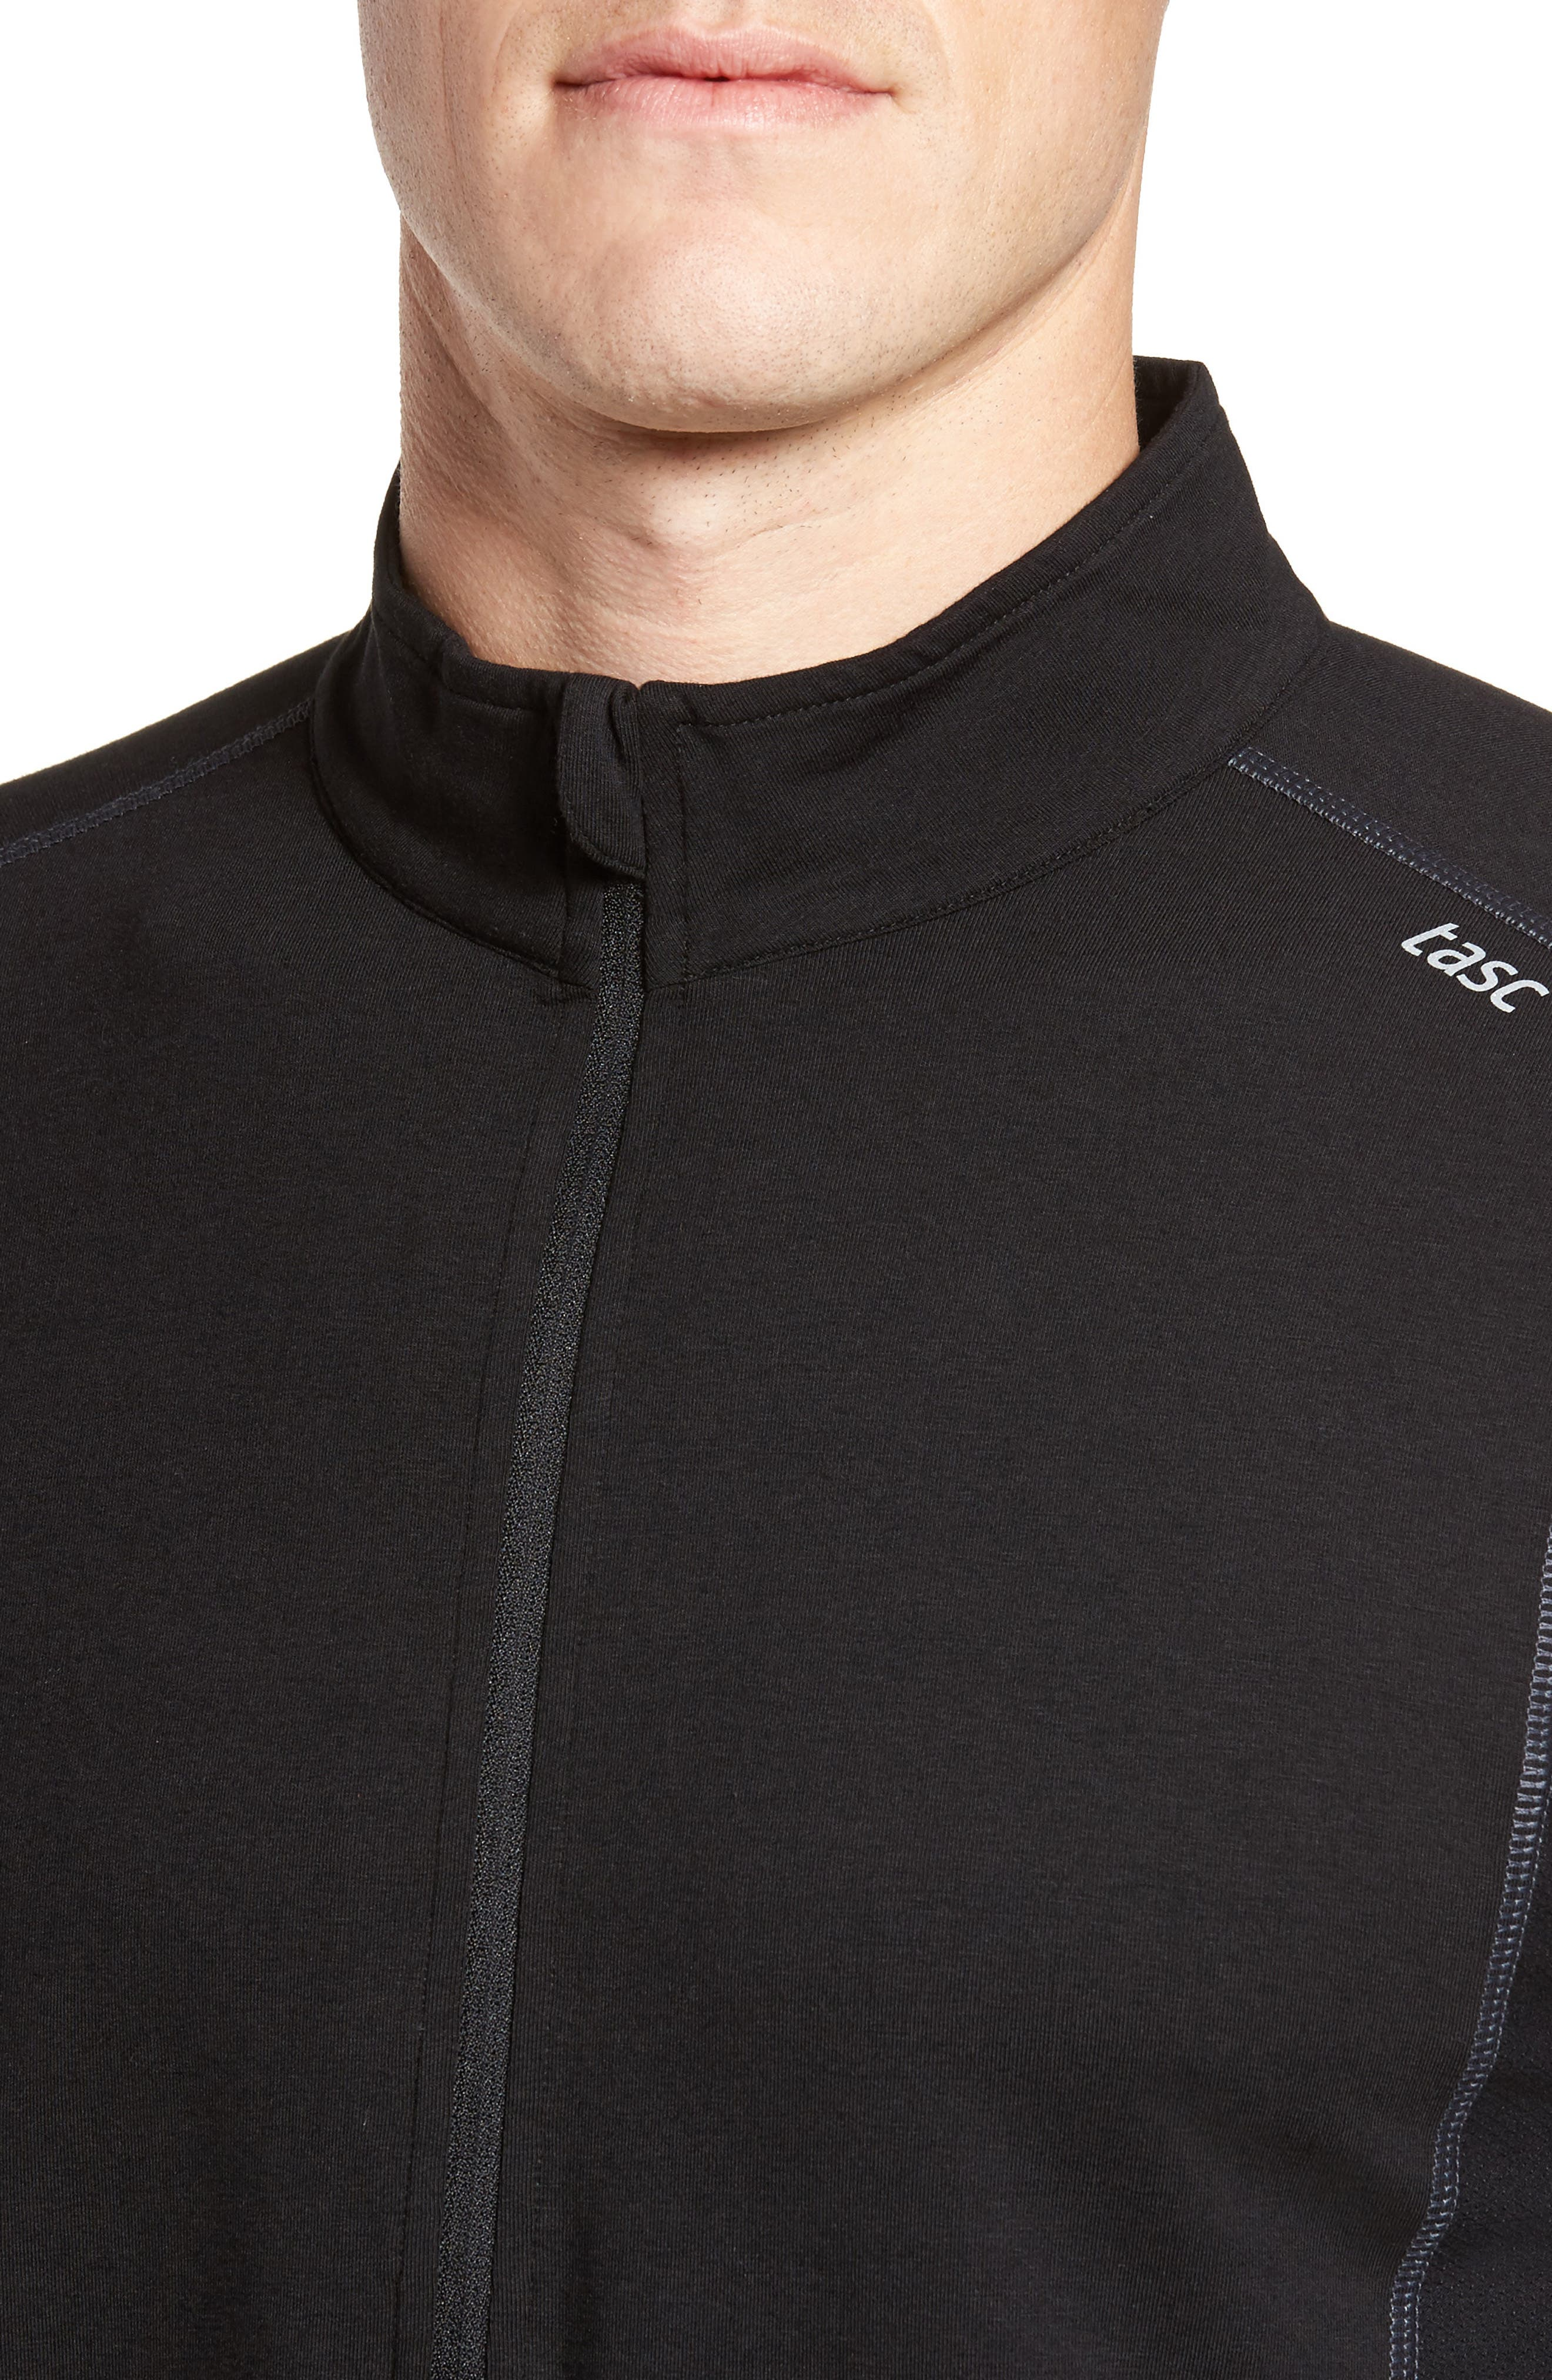 Charge Quarter-Zip Pullover,                             Alternate thumbnail 4, color,                             001